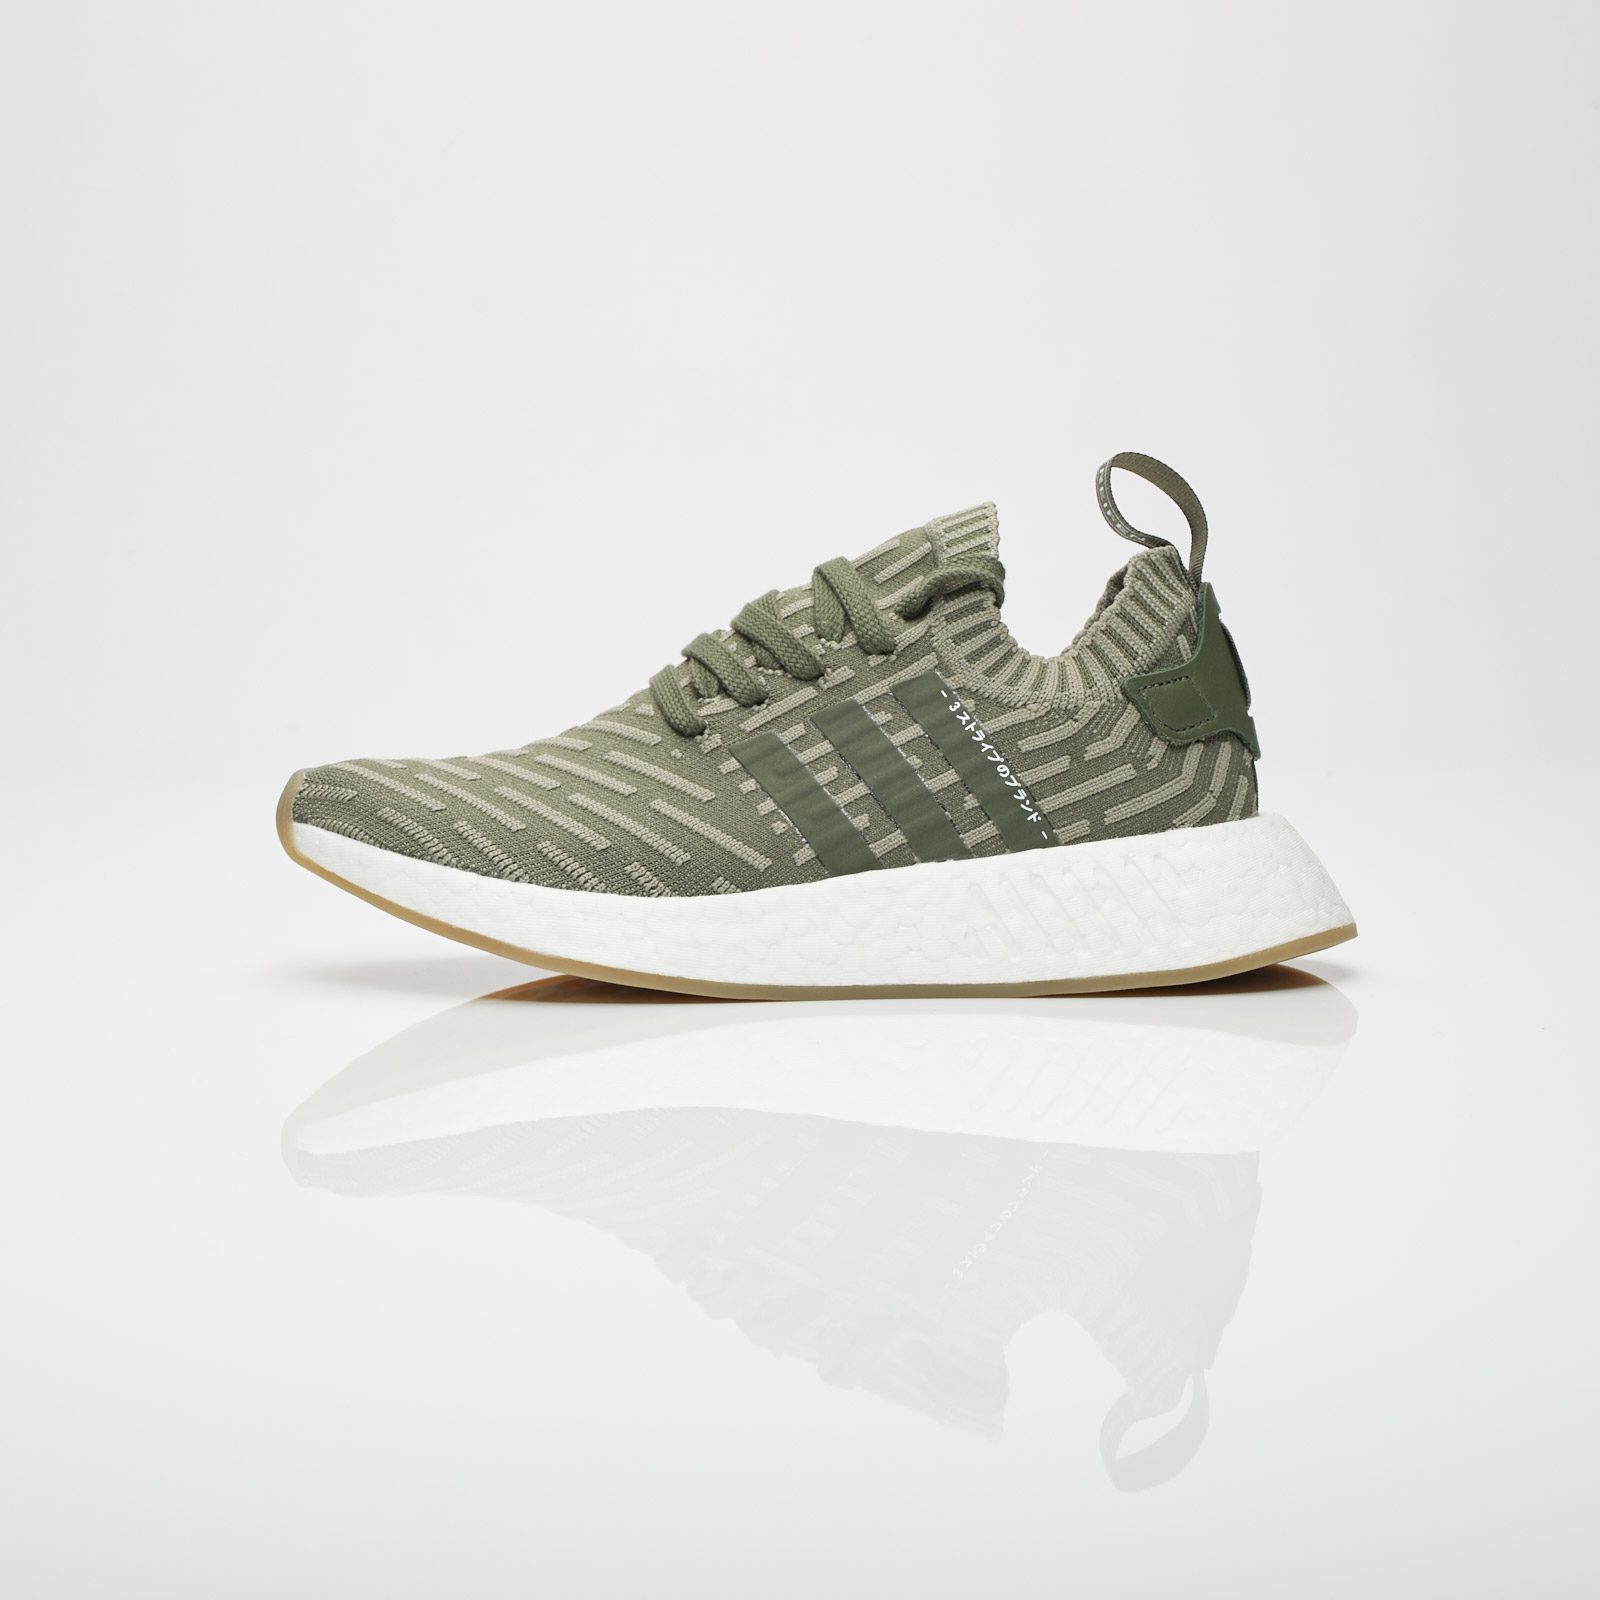 39491534064b4 adidas NMD R2 PK W - By9953 - Sneakersnstuff